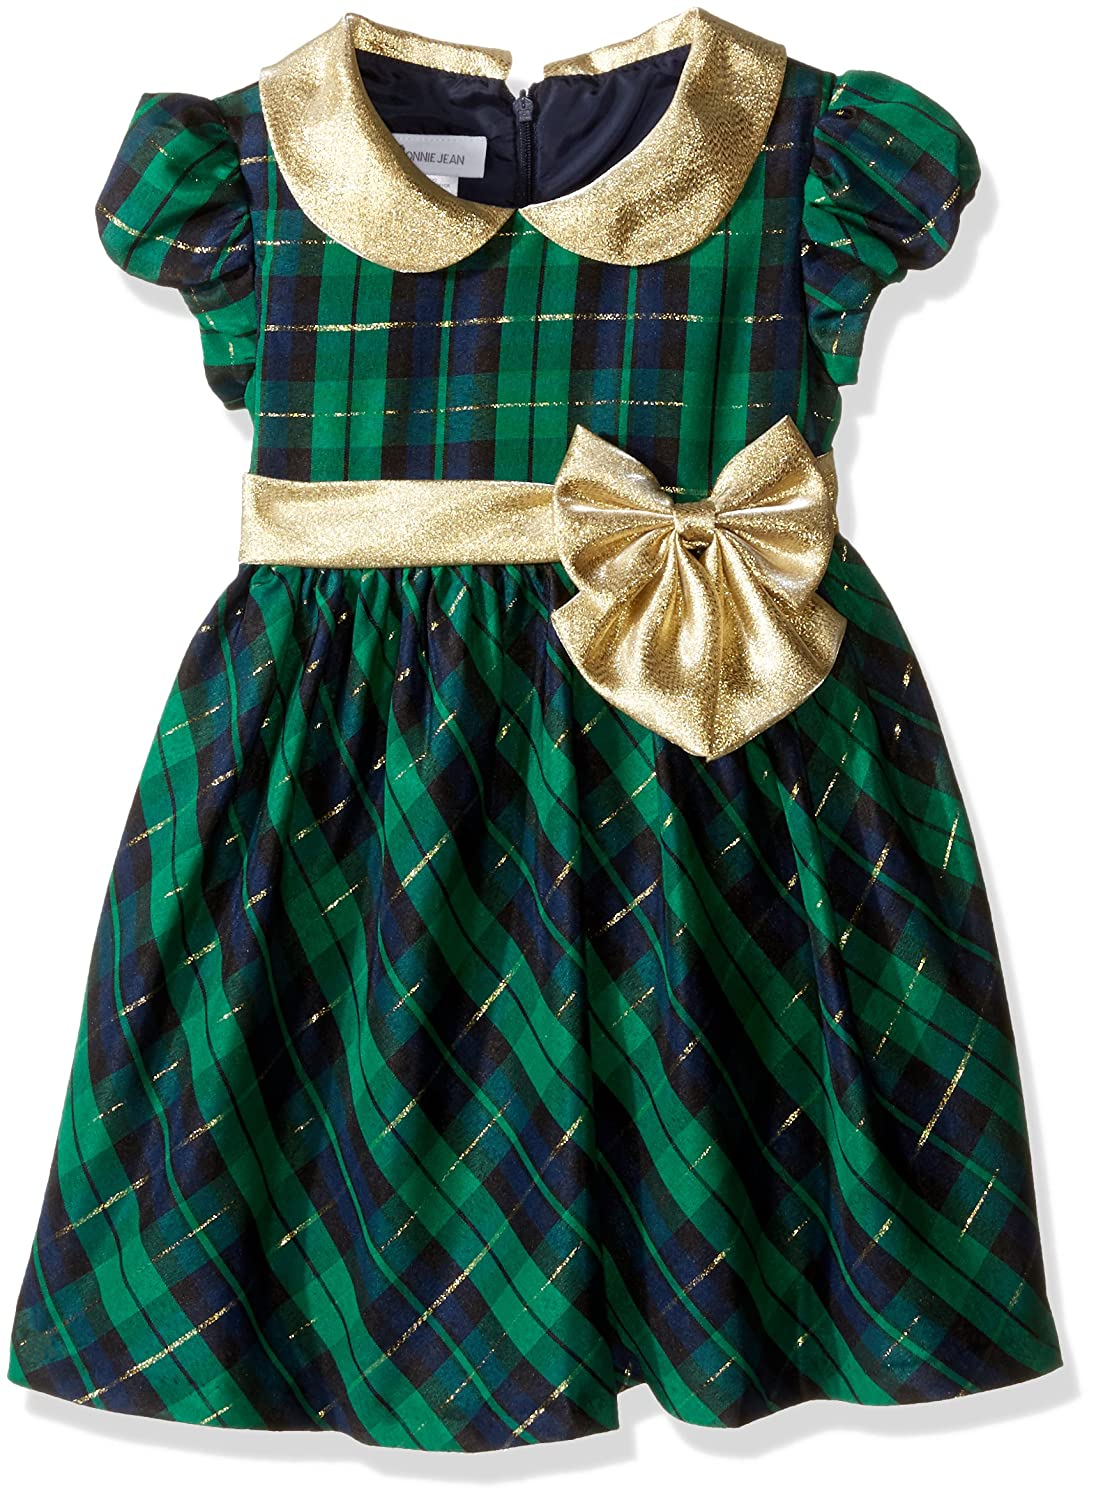 Kids 1950s Clothing & Costumes: Girls, Boys, Toddlers Bonnie Jean Girls Plaid Peter Pan Dress $29.99 AT vintagedancer.com